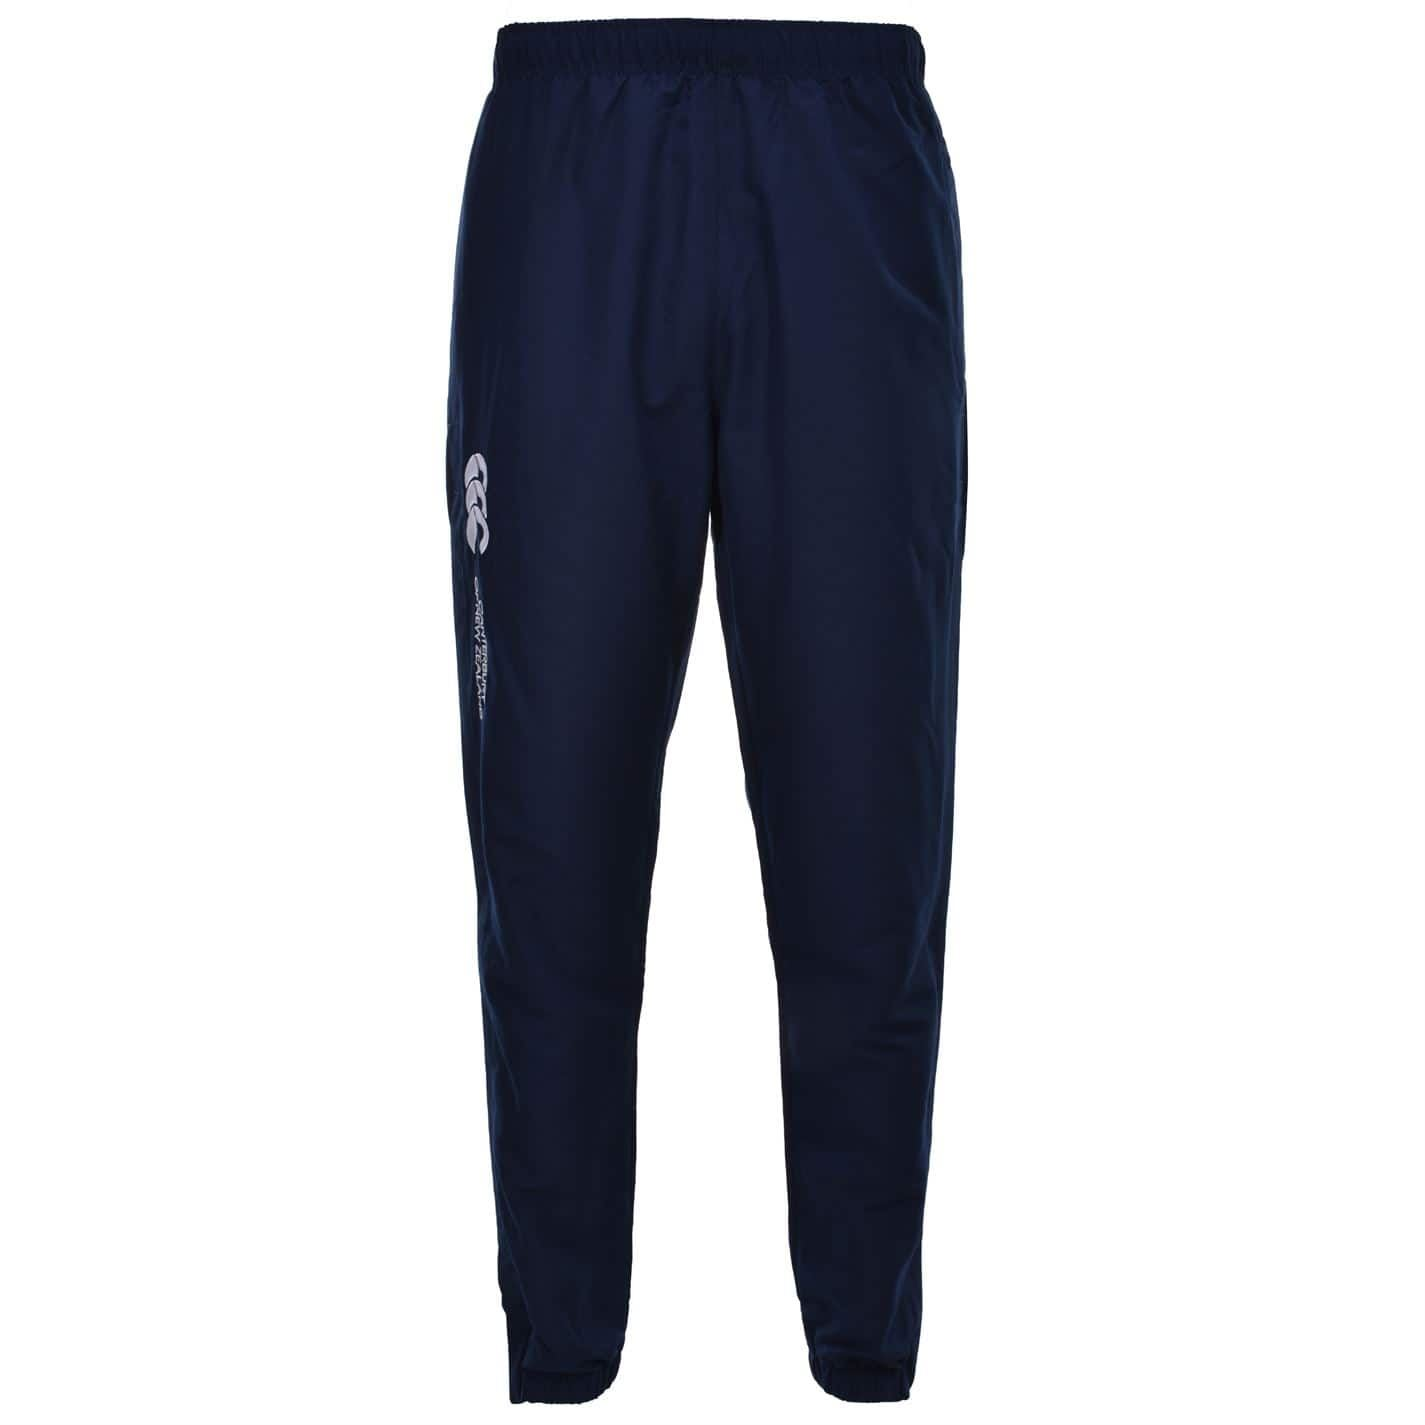 Canterbury-Cuffed-Stadium-Tracksuit-Pants-Mens-Rugby-Sweatpants-Fan-Bottoms thumbnail 10